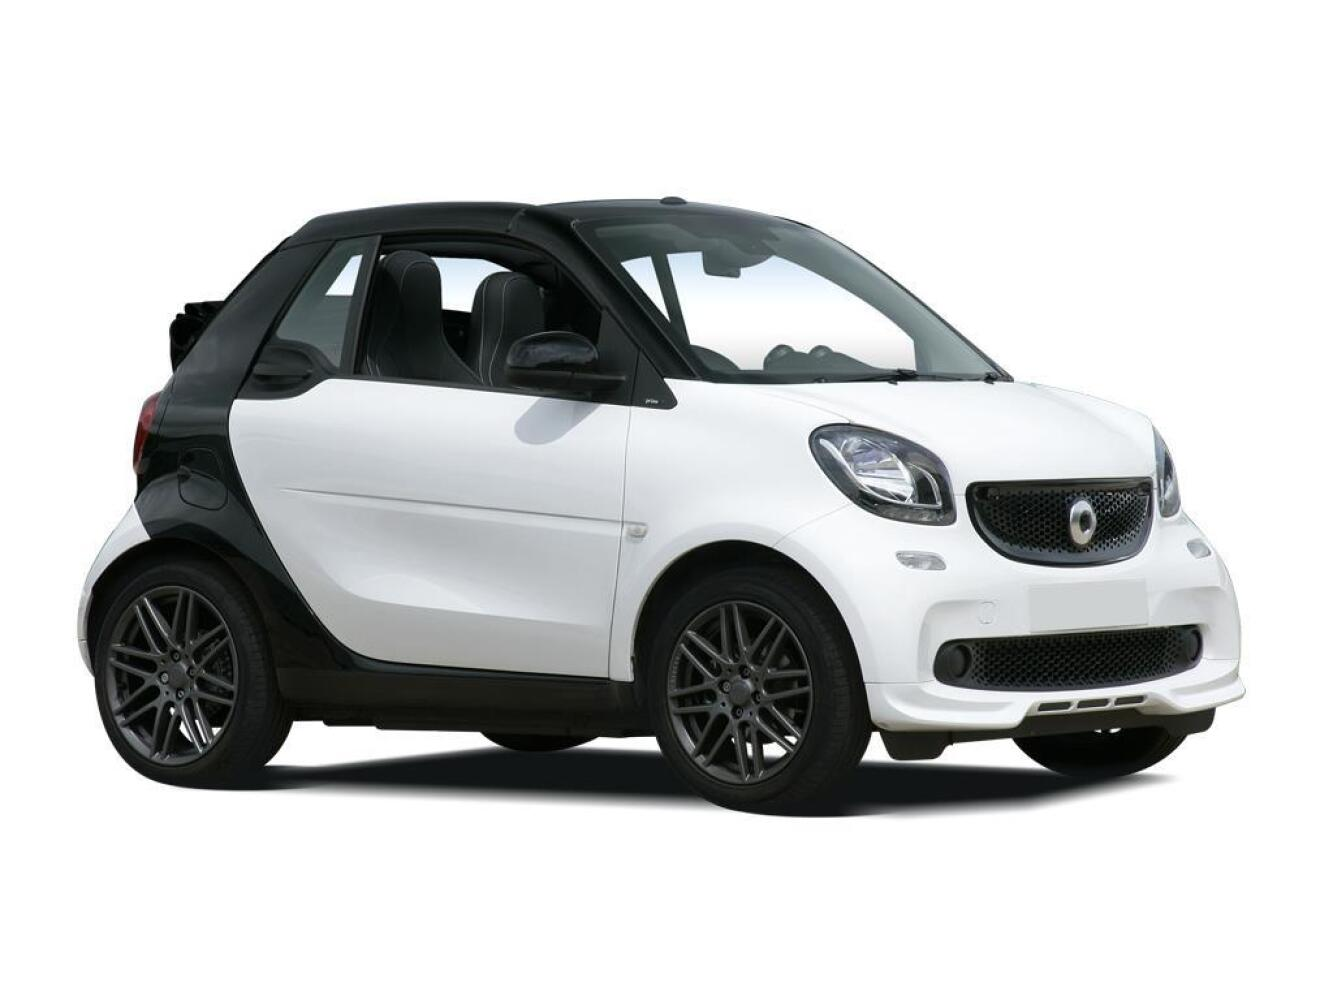 new smart fortwo cabrio 60kw eq edition nightsky 17kwh 2dr. Black Bedroom Furniture Sets. Home Design Ideas